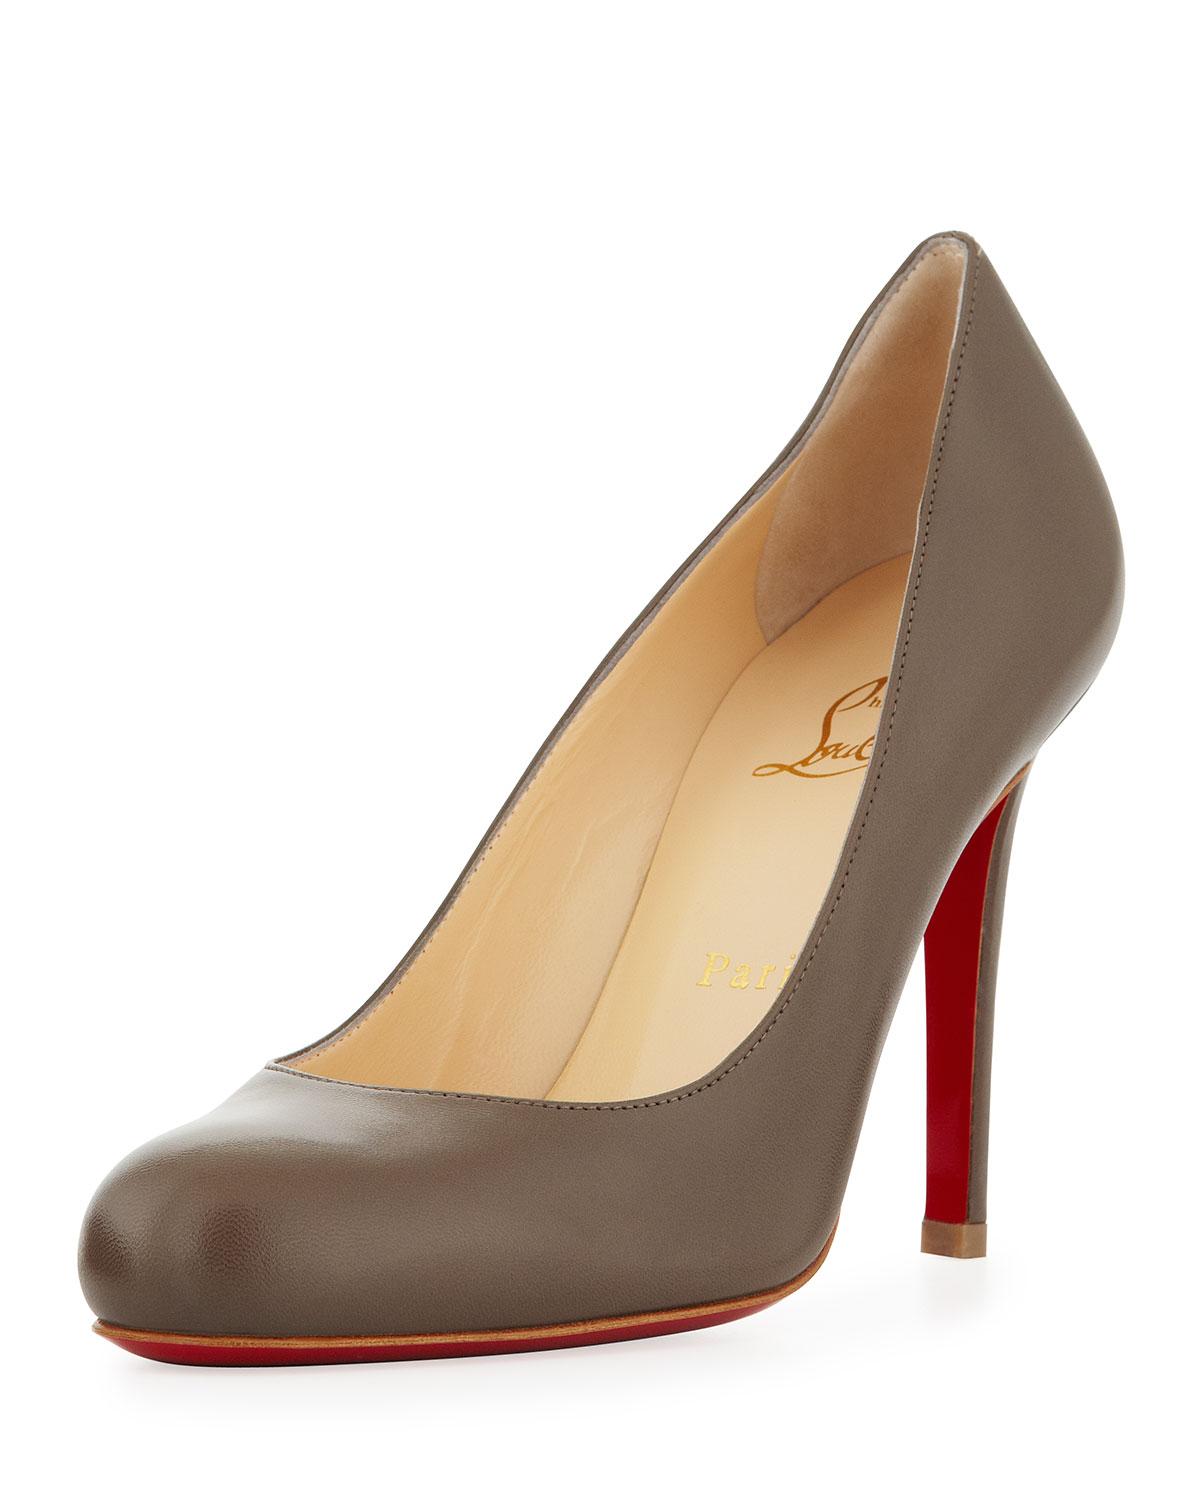 christian louboutin pumps Taupe suede covered heels | The Filipino ...